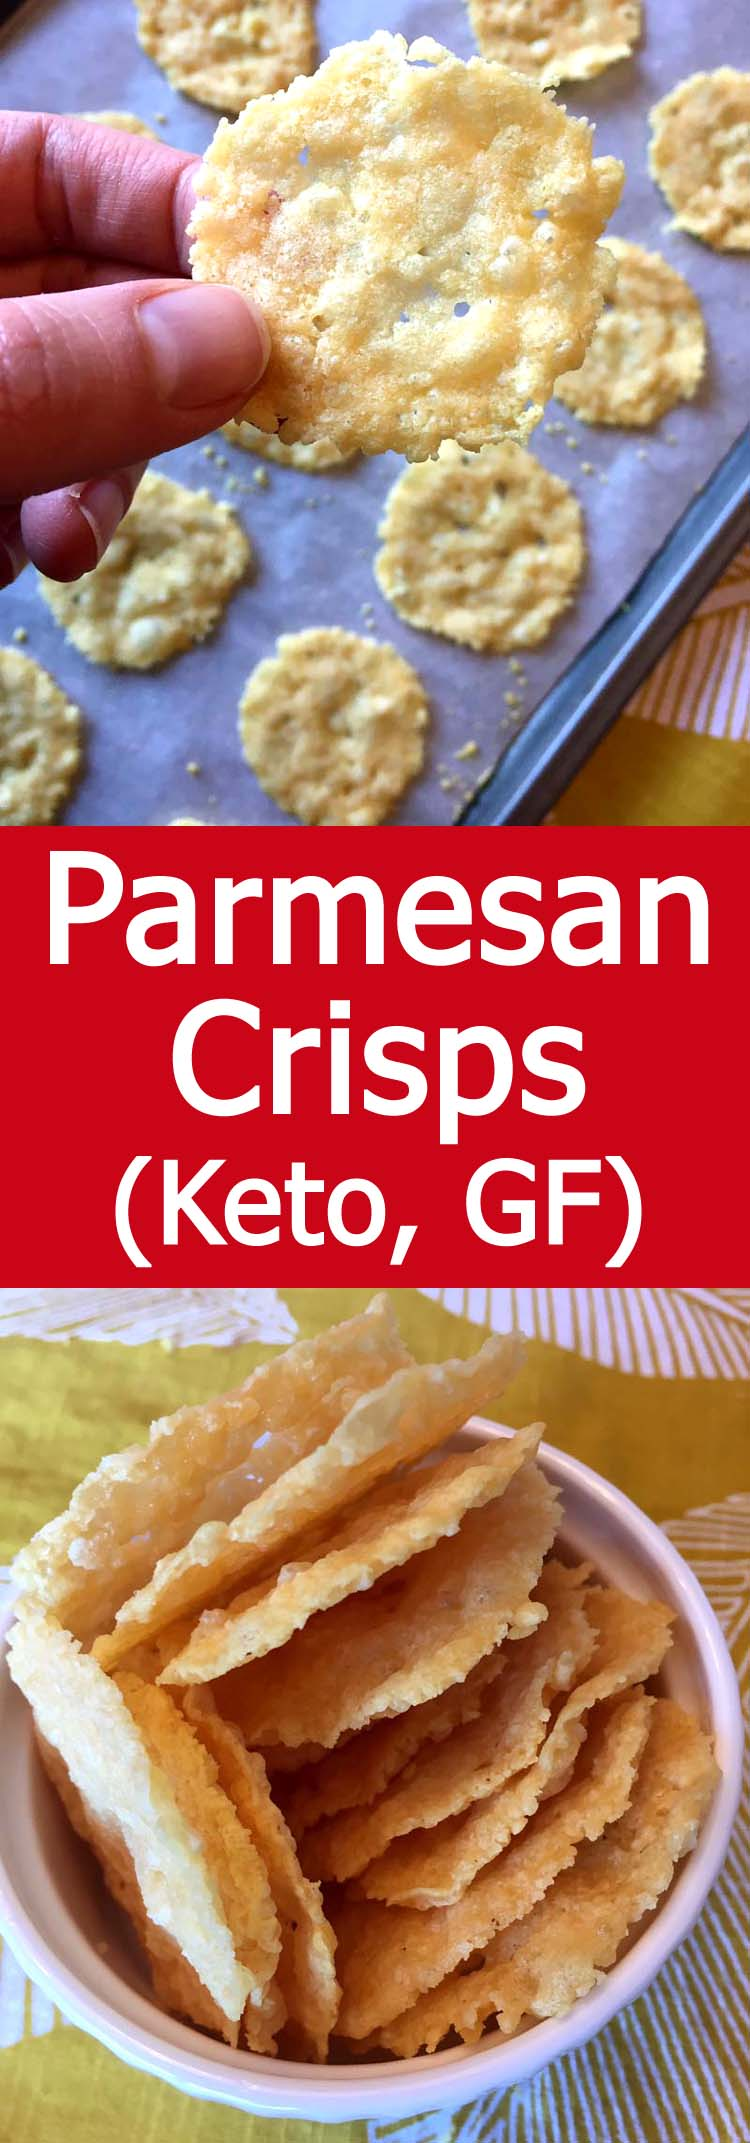 These baked Parmesan crisps are so addictive! Epic taste without the carbs! So easy to make, these keto Parmesan crisps are always a hit!